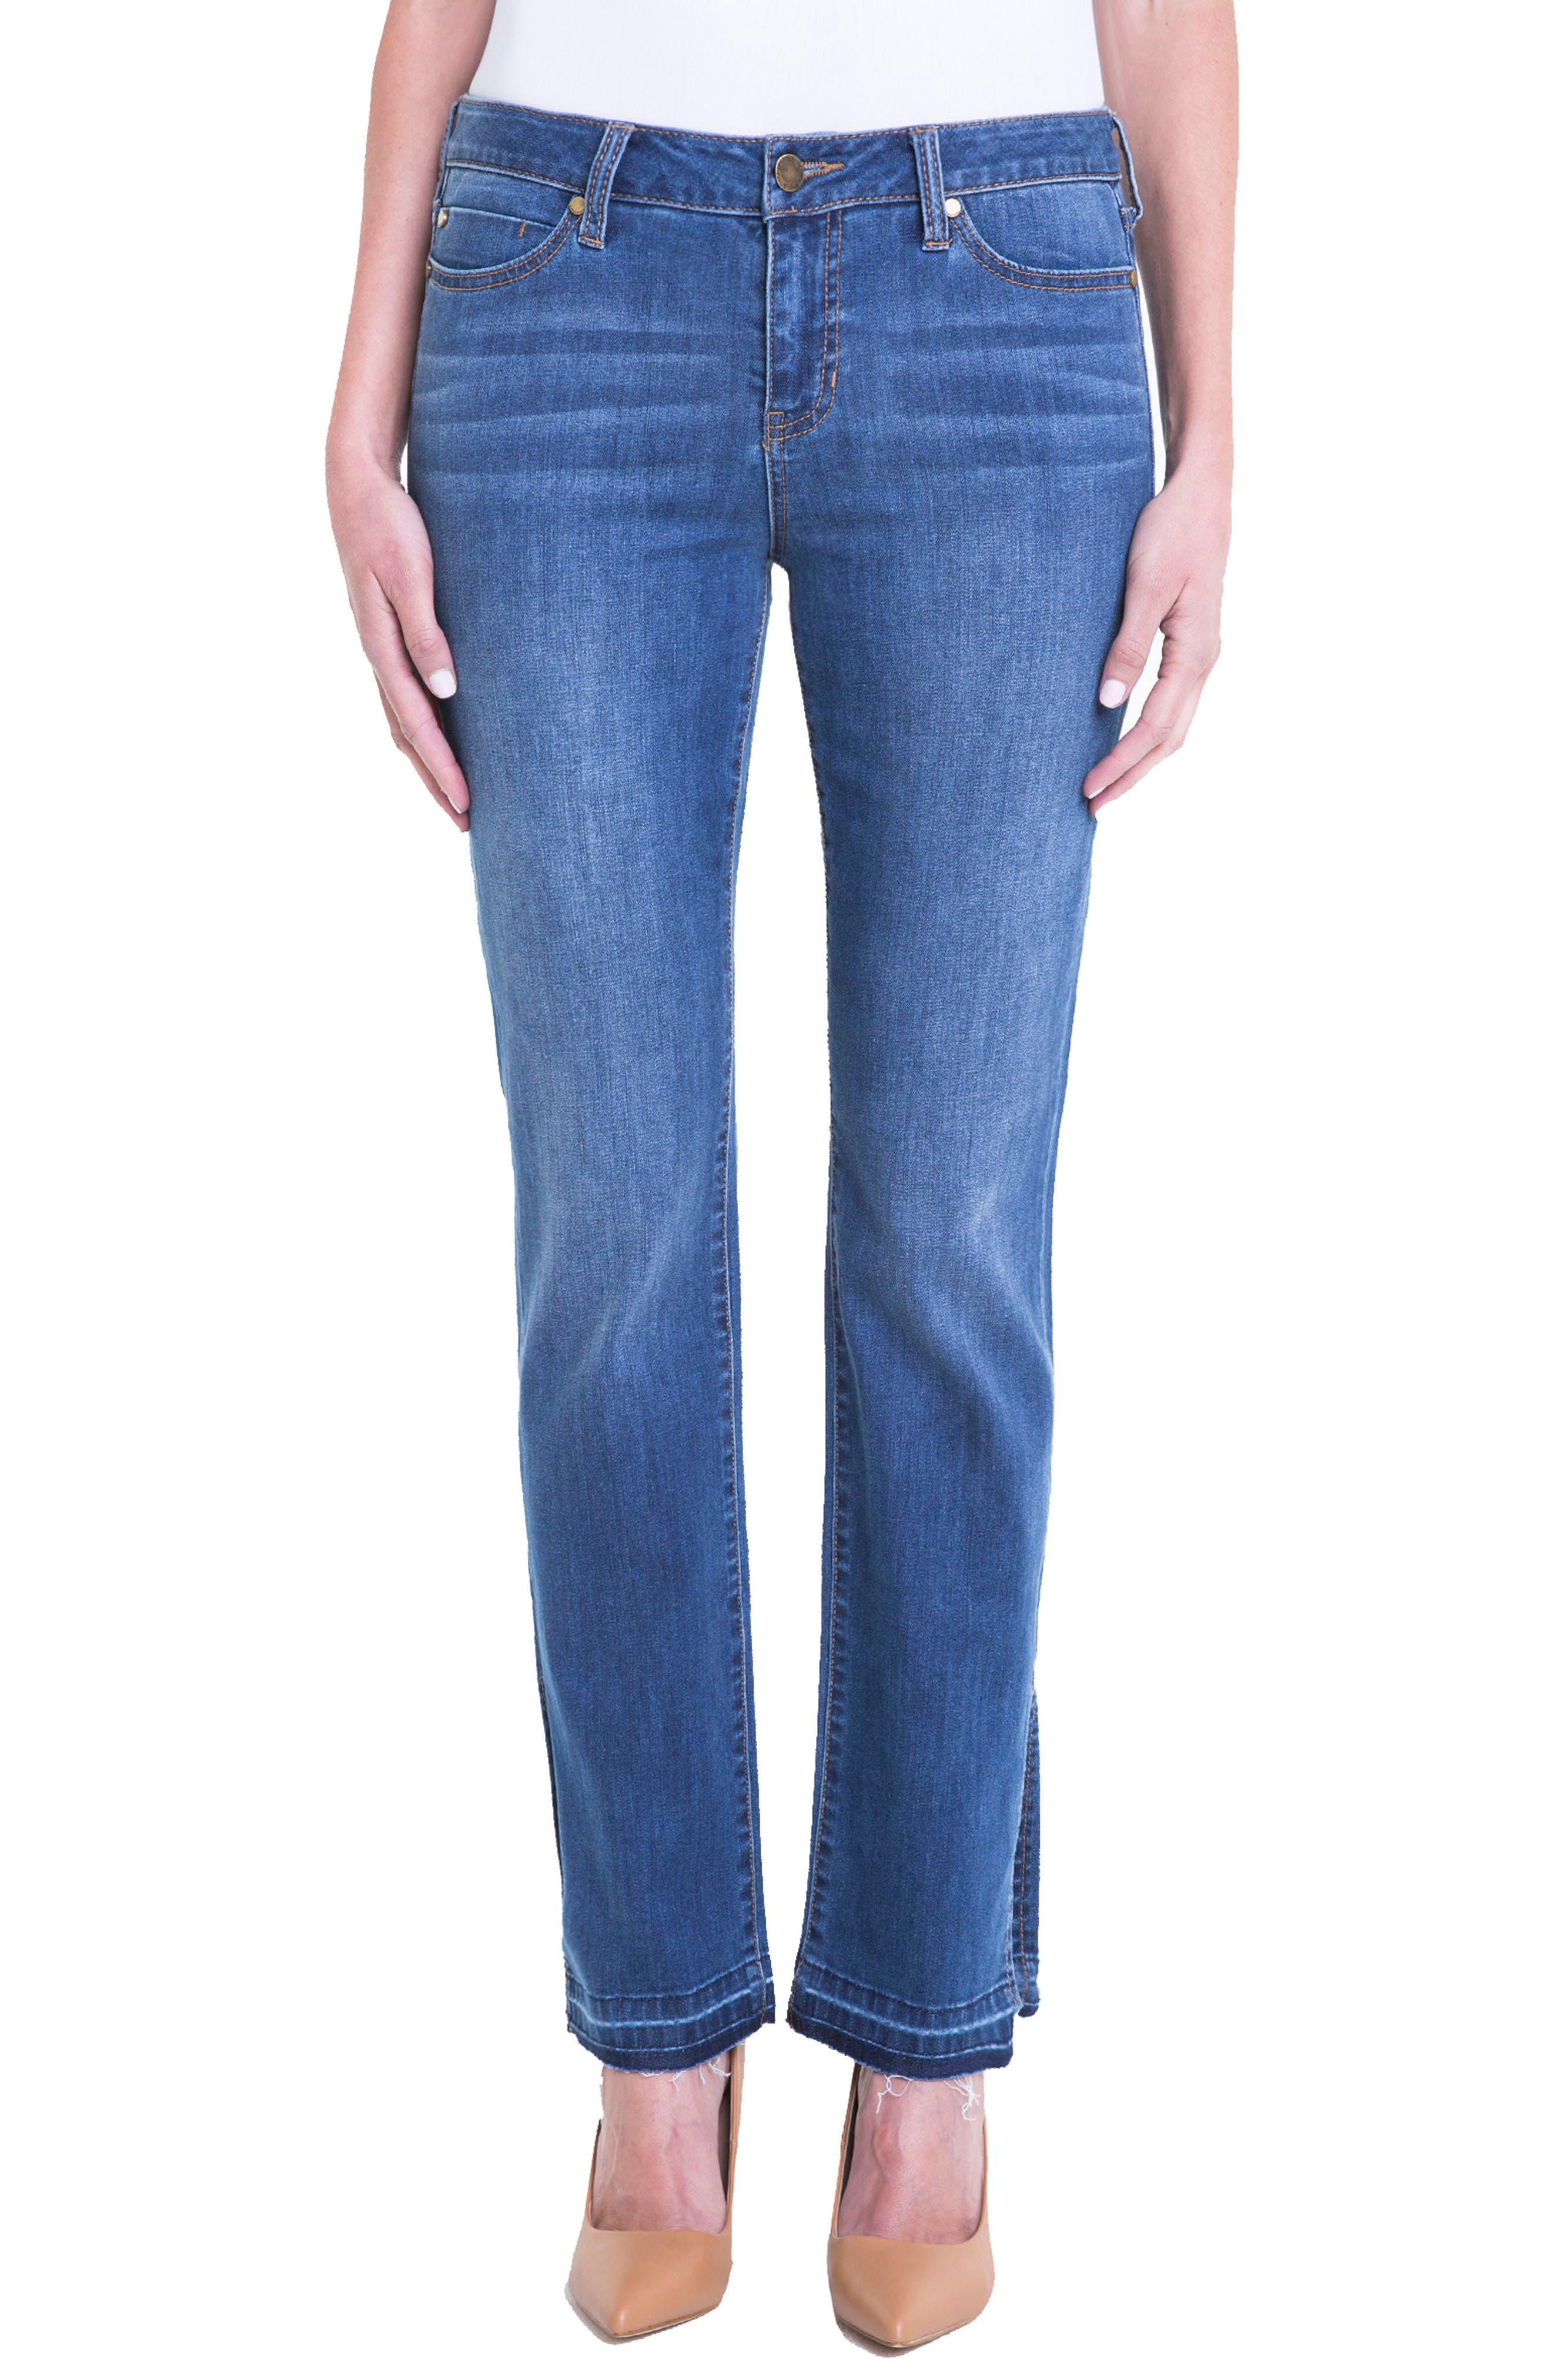 Alternate Image 1 Selected - Liverpool Jeans Company Tabitha Release Hem Straight Leg Jeans (Montauck Mid)